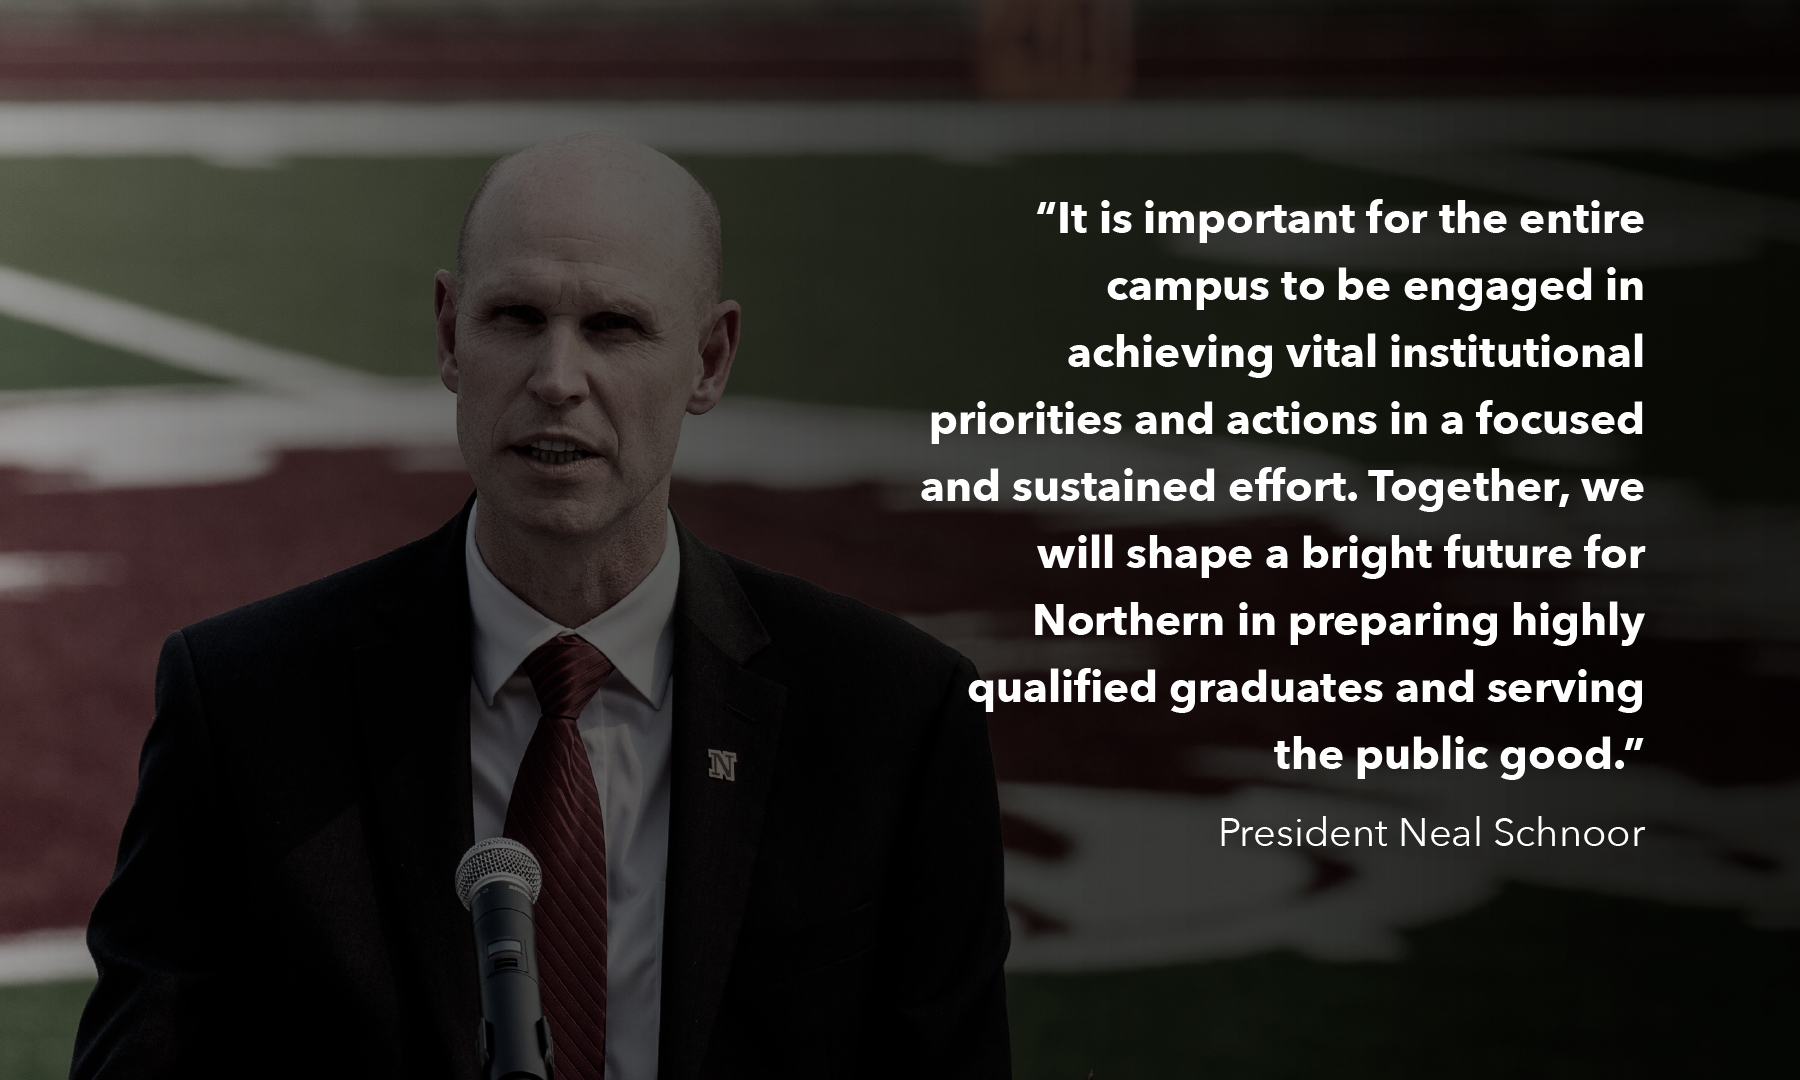 A photo of President Schnoor speaking outside: It is important for the entire campus to be engaged in achieving vital institutional priorities and actions in a focused and sustained effort. Together, we will shape a bright future for Northern in preparing highly qualified graduates and serving the public good.